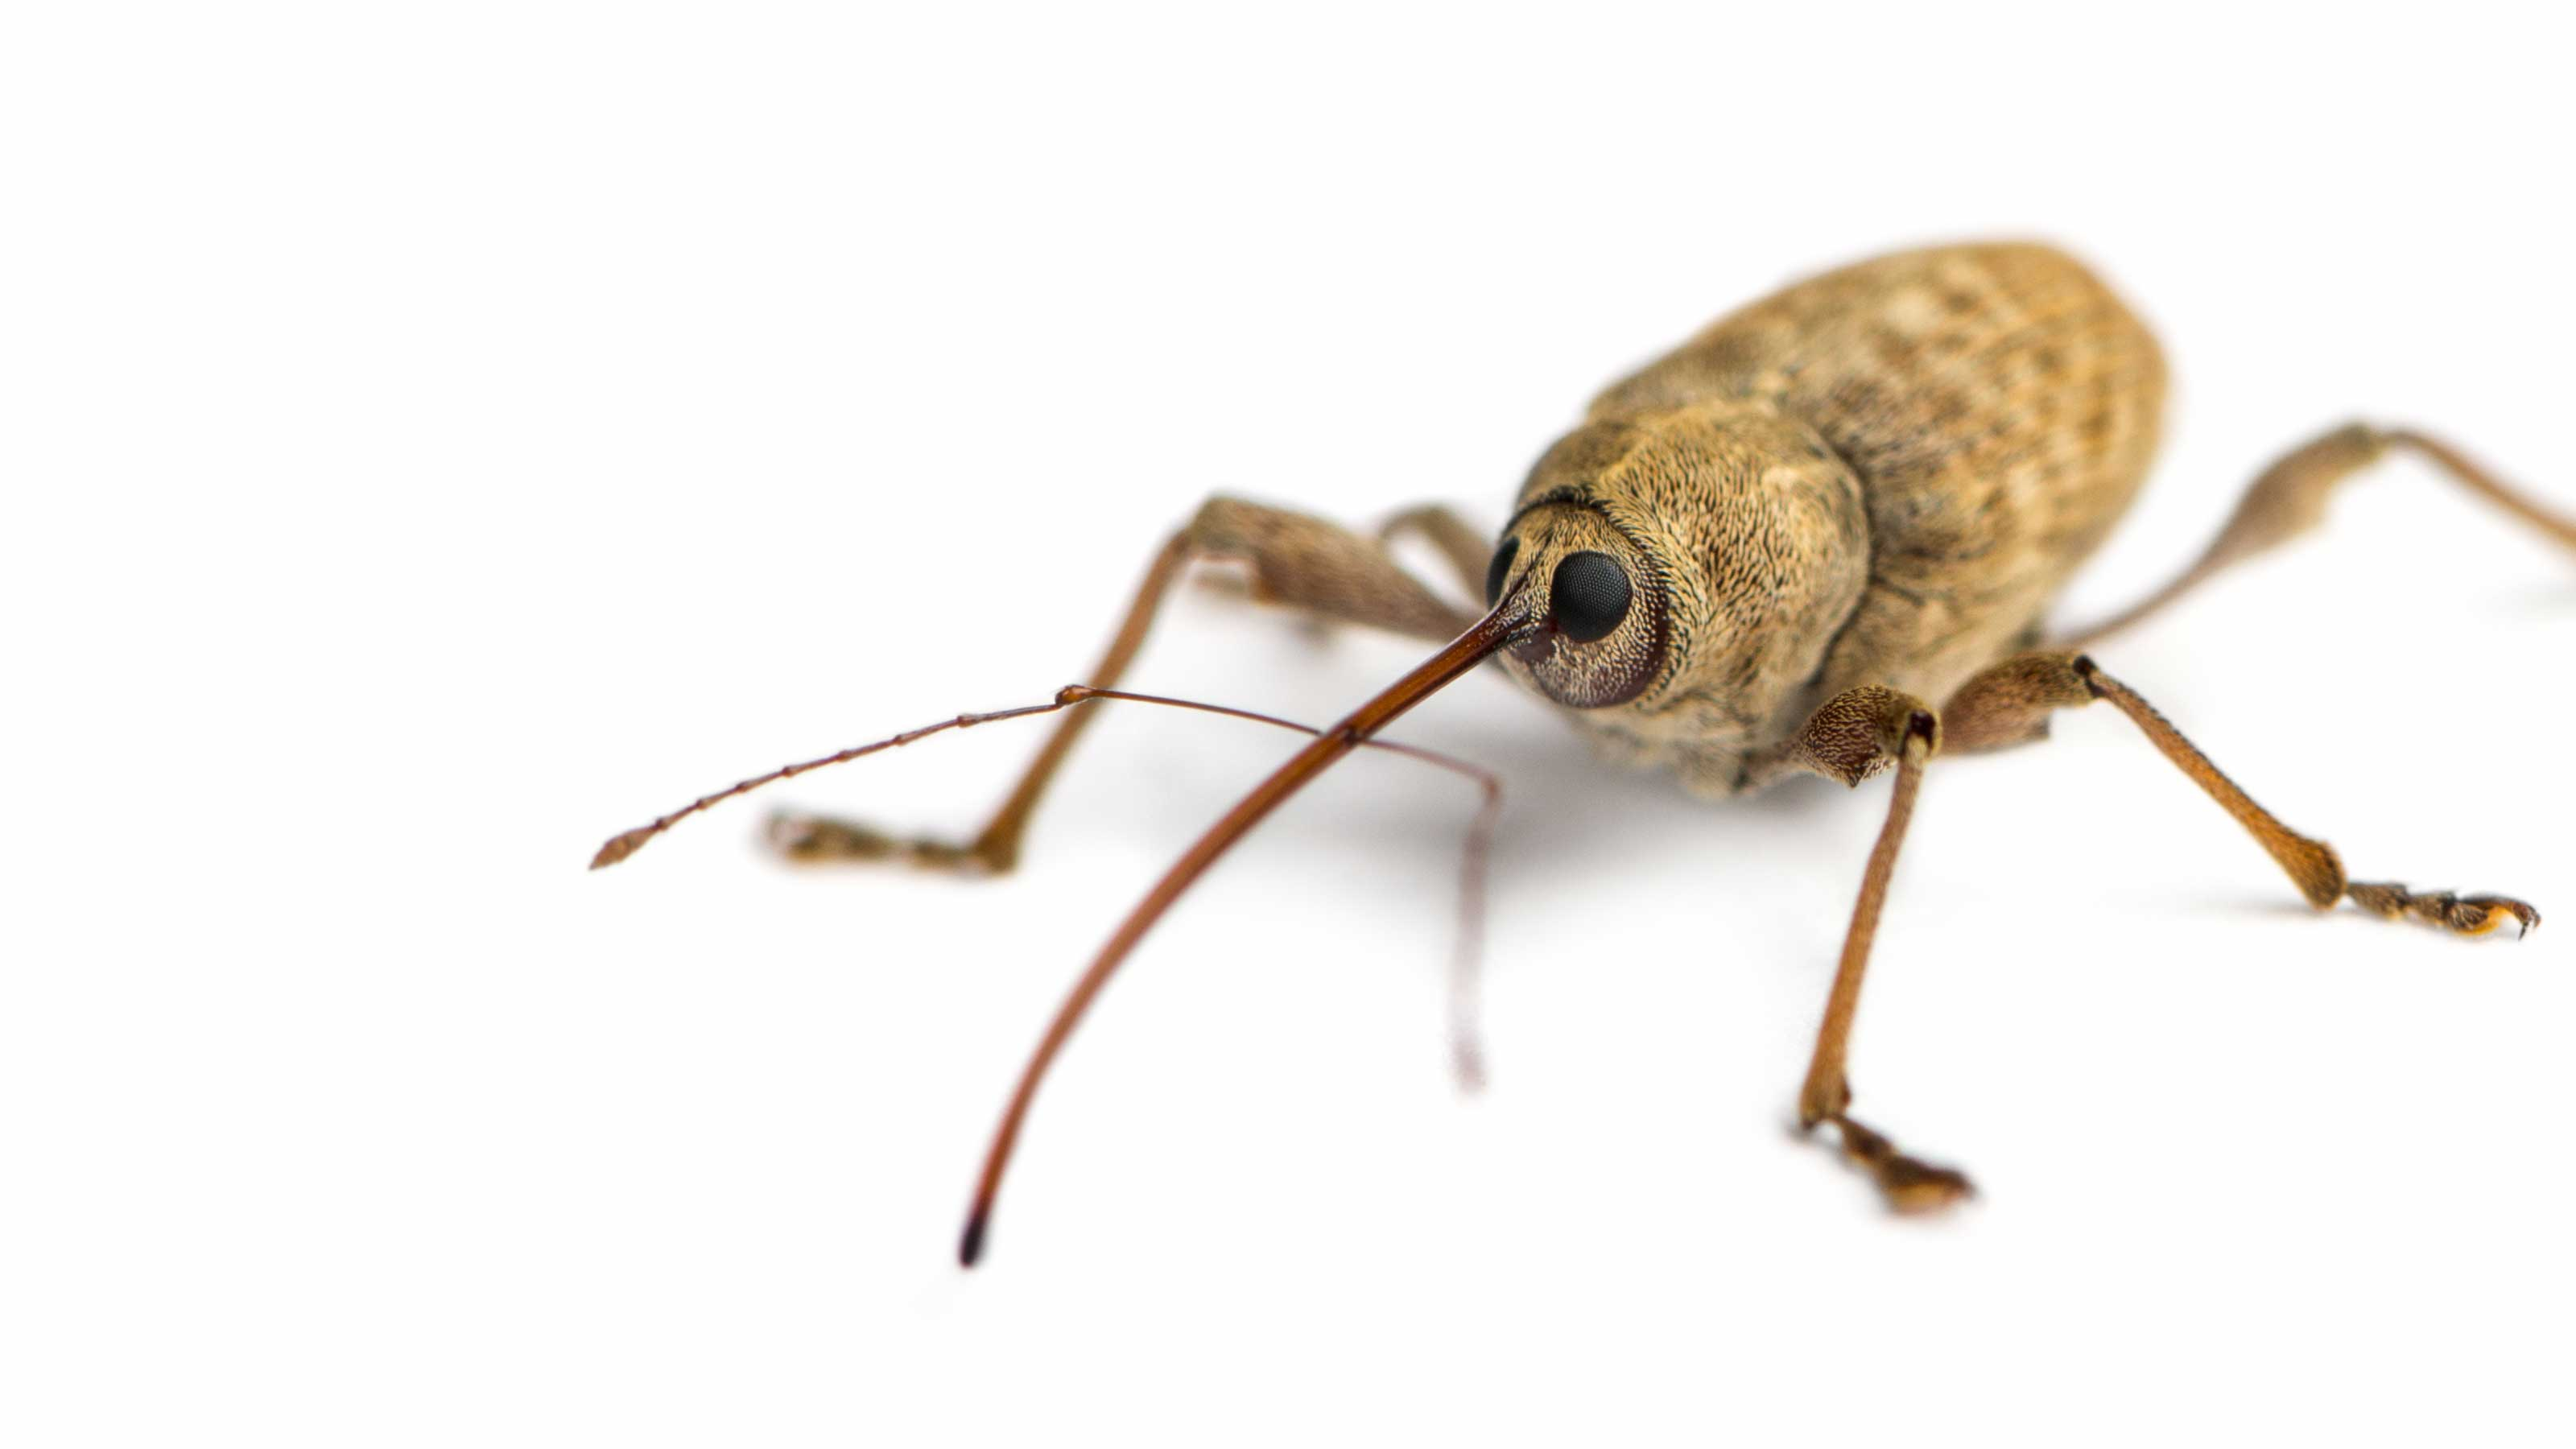 Stock image close up of a weevil